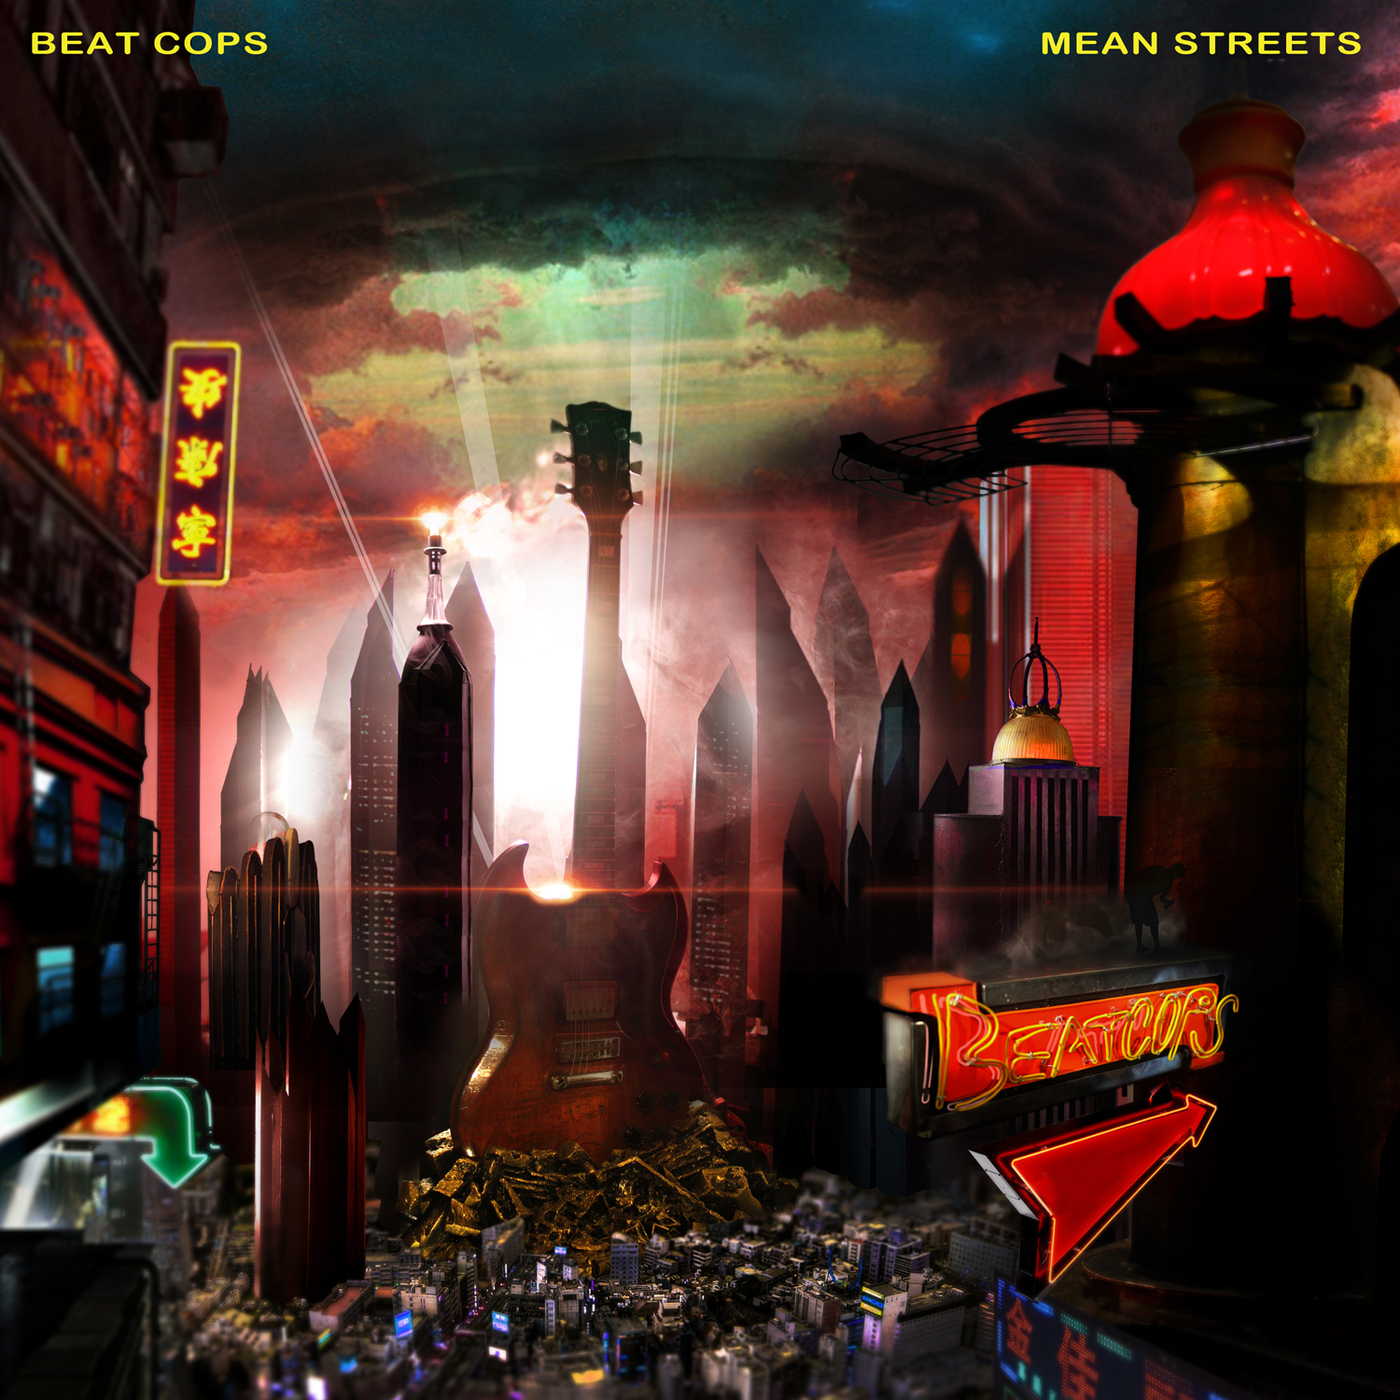 Beat Cops - Mean Streets